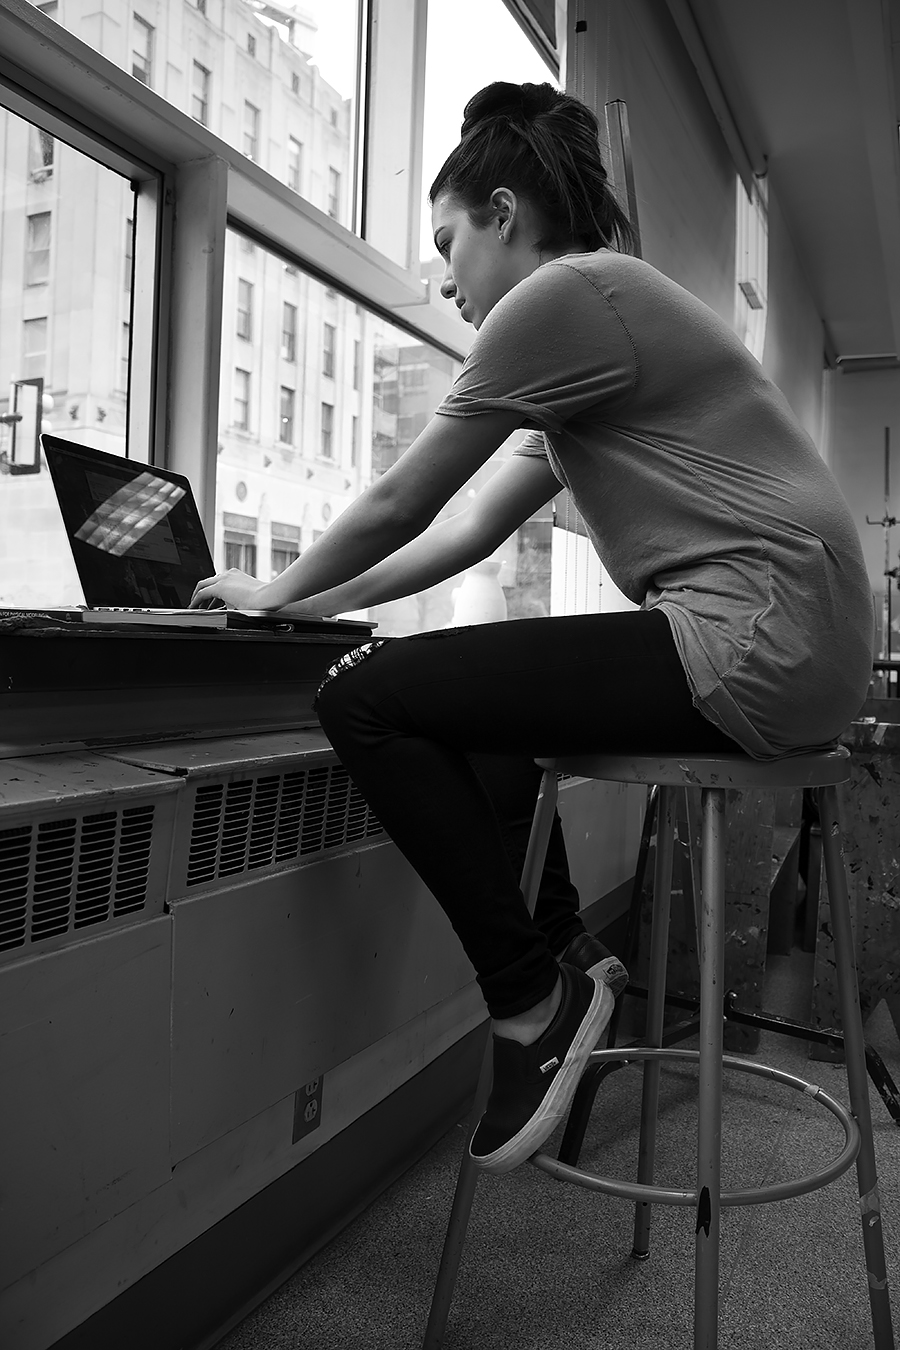 Tyler_Ling_photography_finearts_computers_absorbed_engineering_Lauren_Glenn_indoors_Penn_sideshot_unaware_black_white